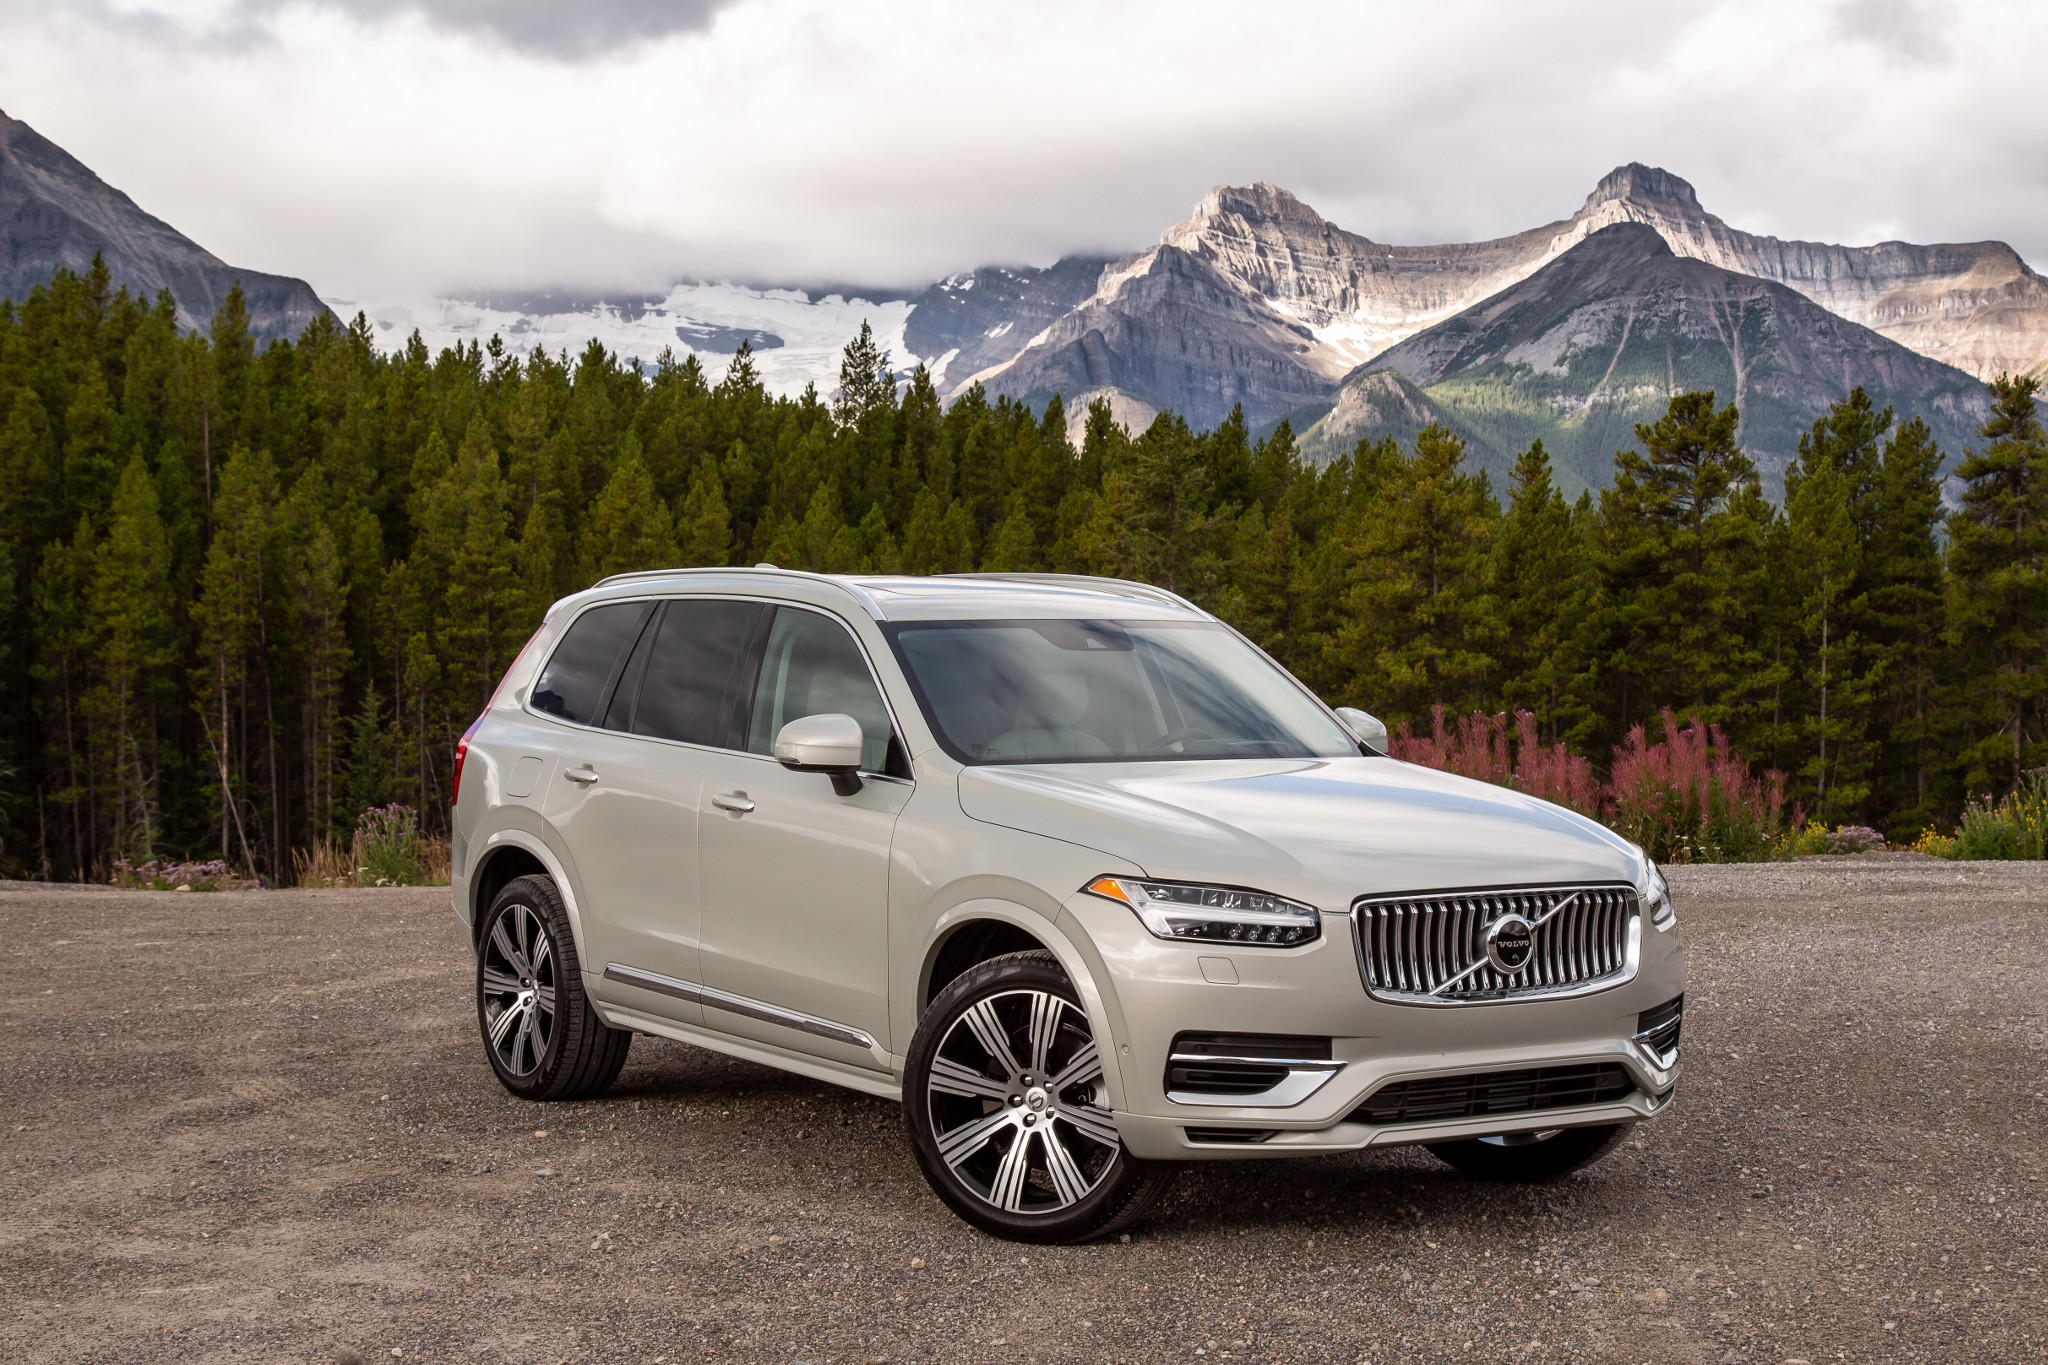 2020 Volvo Xc90 Review An Aging Icon Learns New Tricks